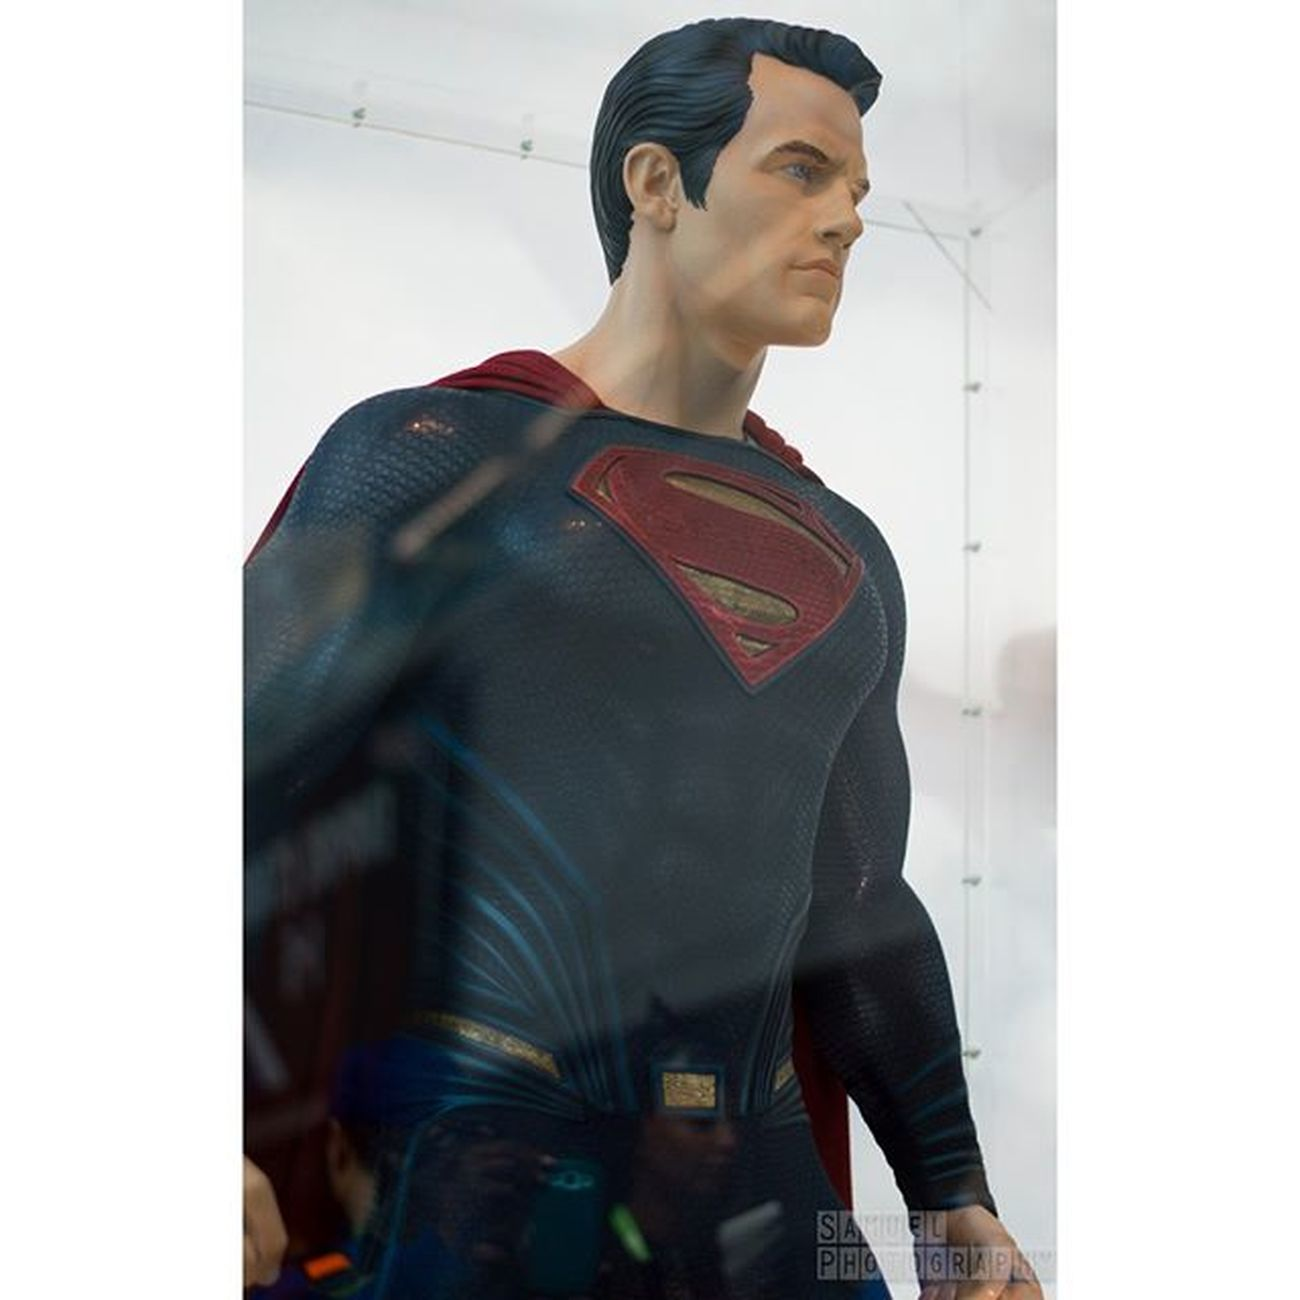 man of steel's uniform in batman v superman Superman Batmanvsuperman DC Comics HenryCavil Manofsteel NYCC NYCC2015 Nycc15 Comiccon Newyorkcomiccon